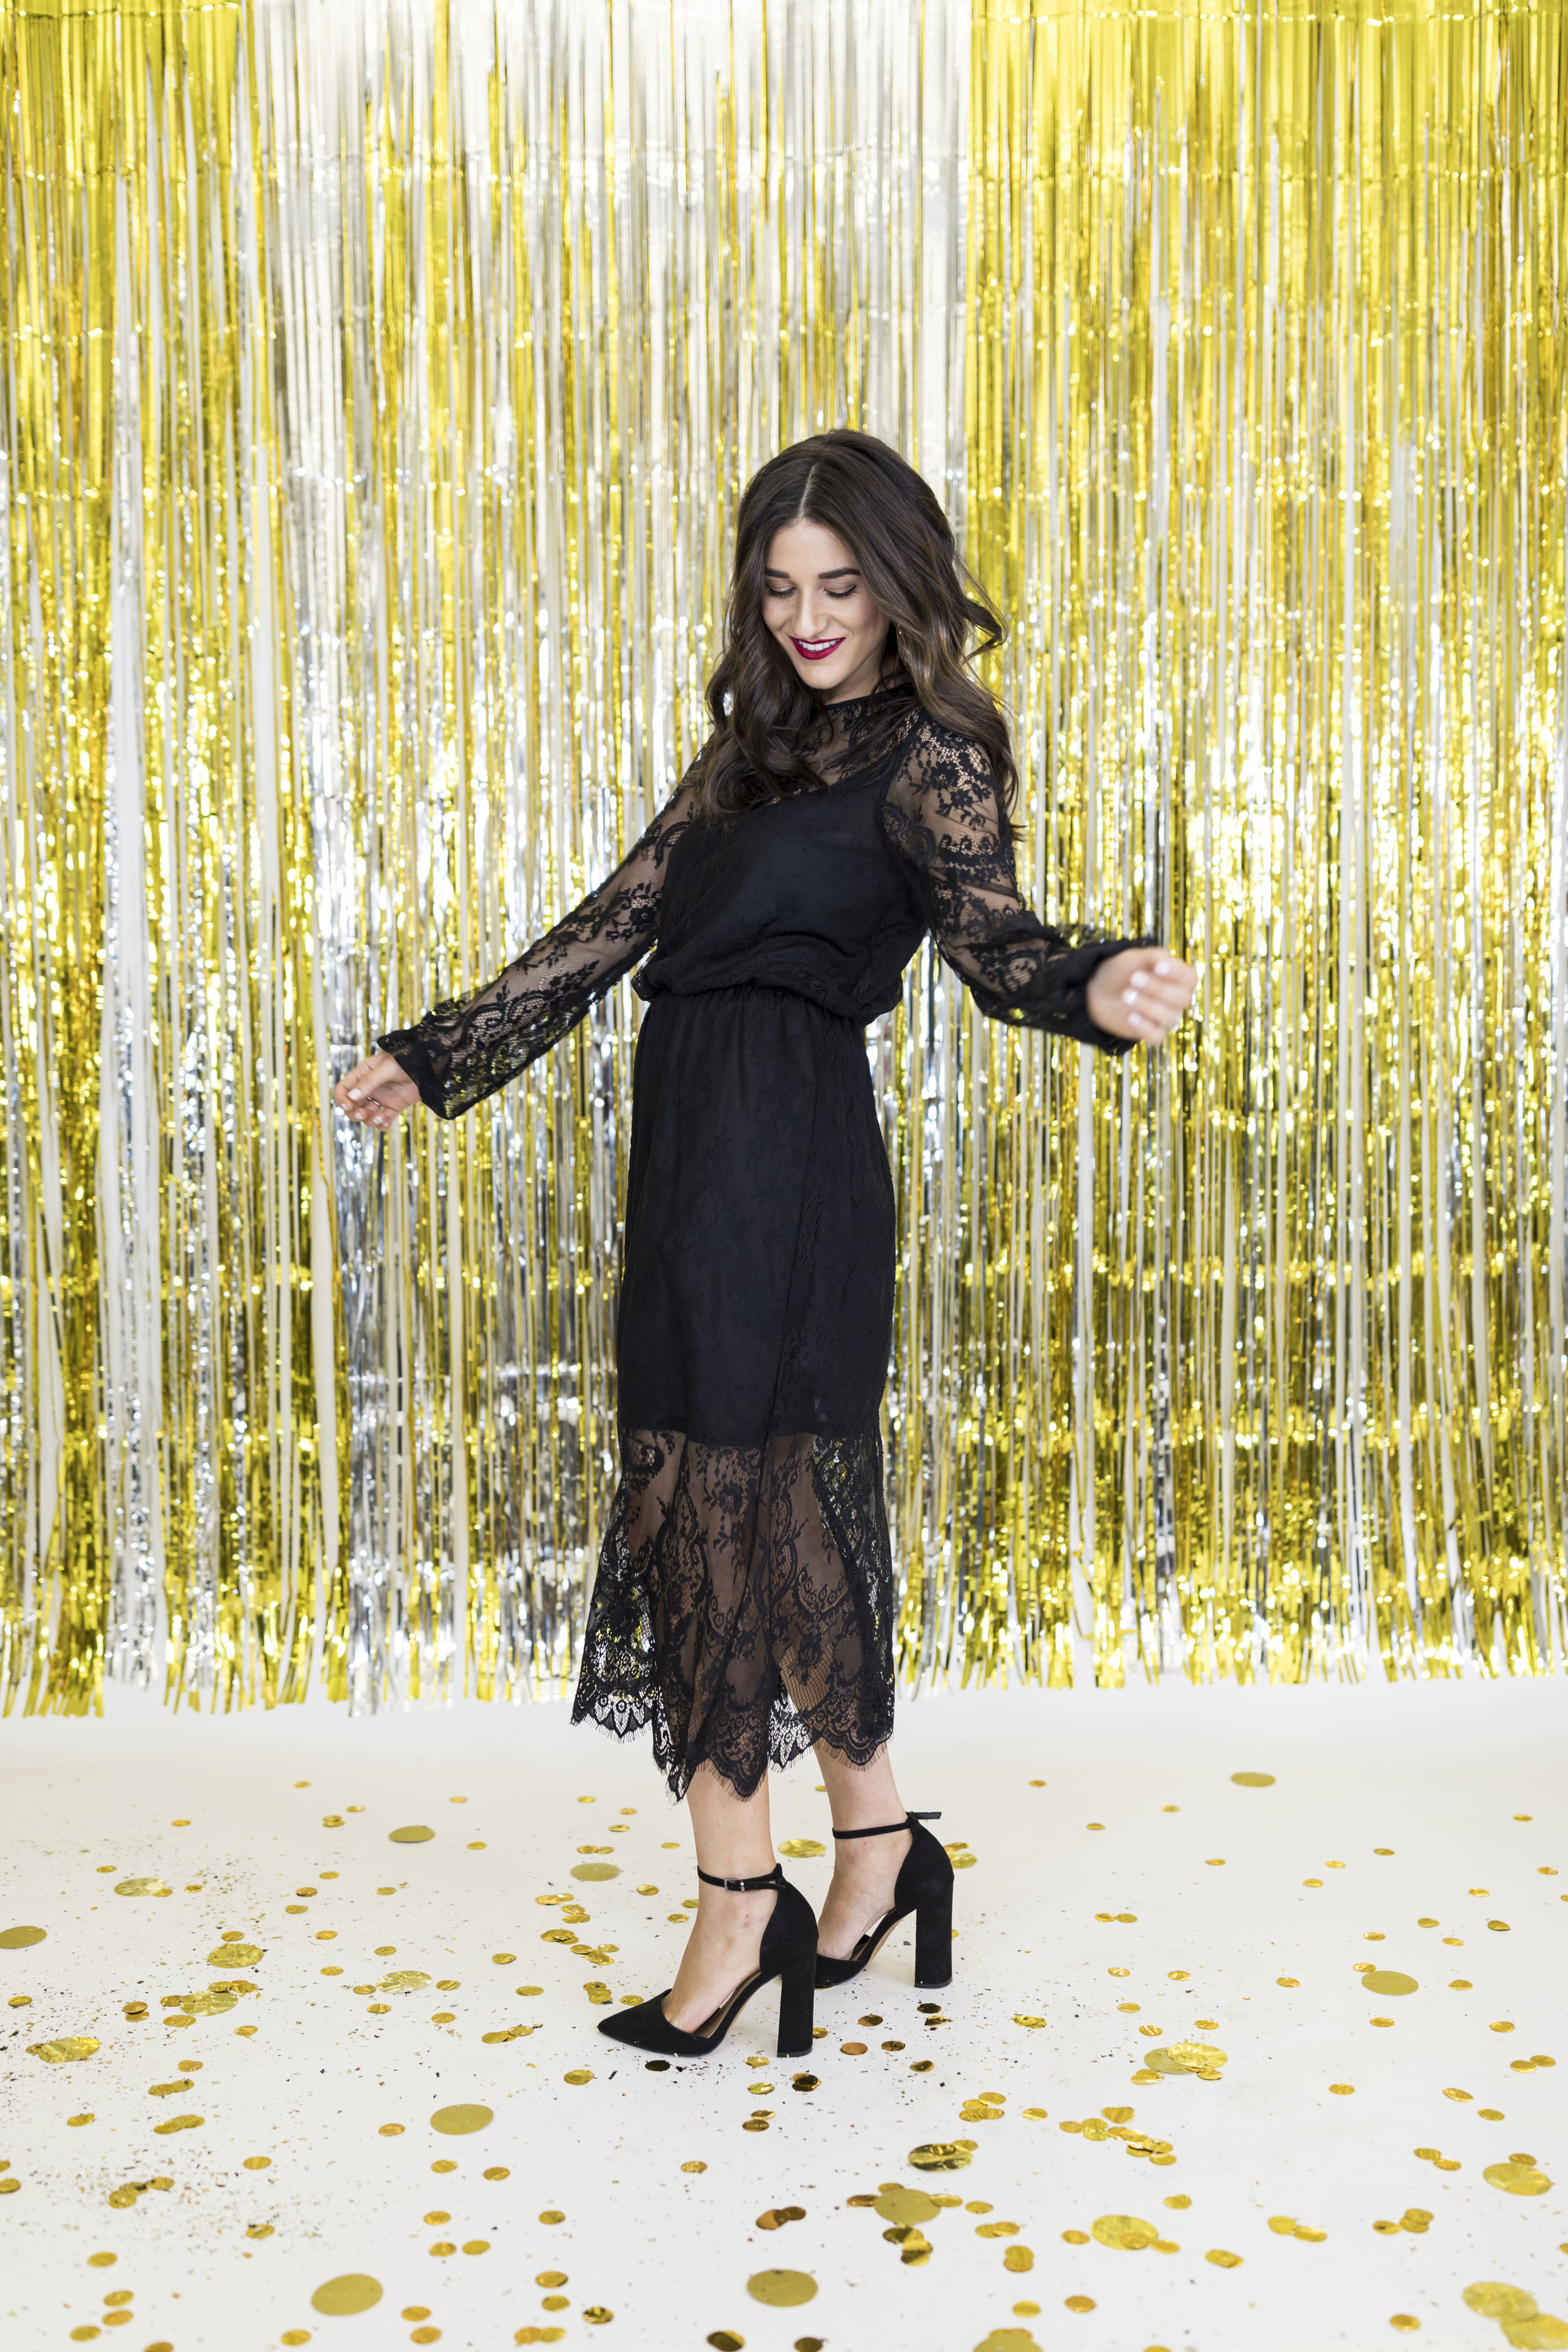 H&M Holiday Video Collab Esther Santer Fashion Blog NYC Street Style Blogger Outfit OOTD Trendy Confetti Streamers Balloons Presents Gift Wrap Shopping Wear Stylist Photoshoot Studio Videographer Hairstyle DryBar Friends Girls Lace Accessories Jewelry.jpg